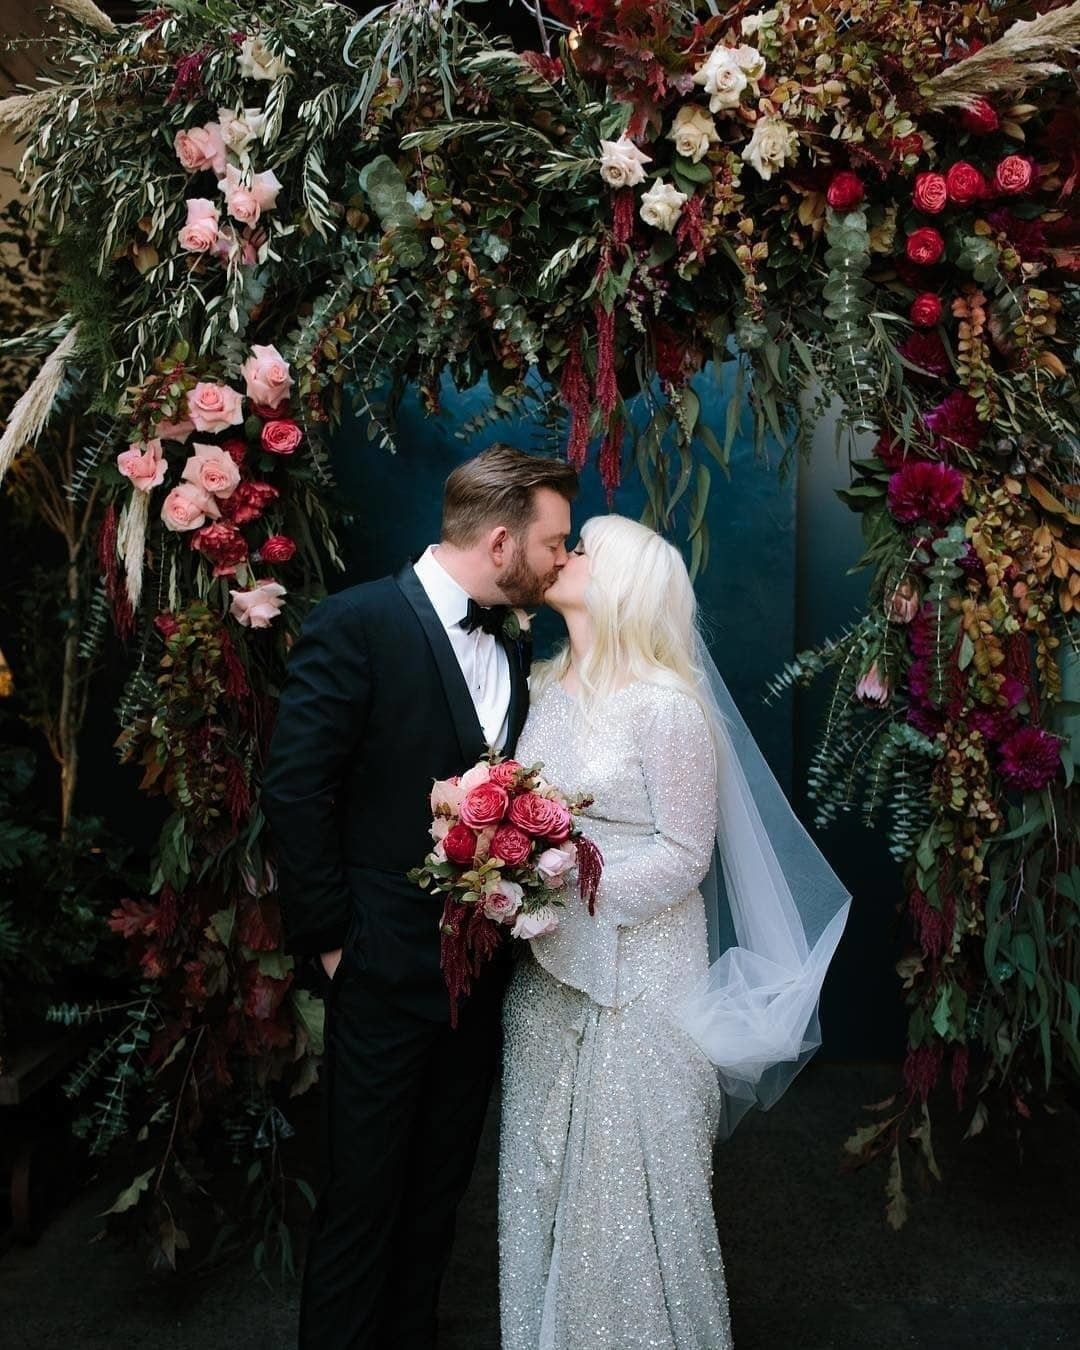 Onefabday Weddings On Instagram There Are So Many Pretty Amazing Flowers Out There To Choose From But Melbourne Wedding Wedding Photography Wedding Styles